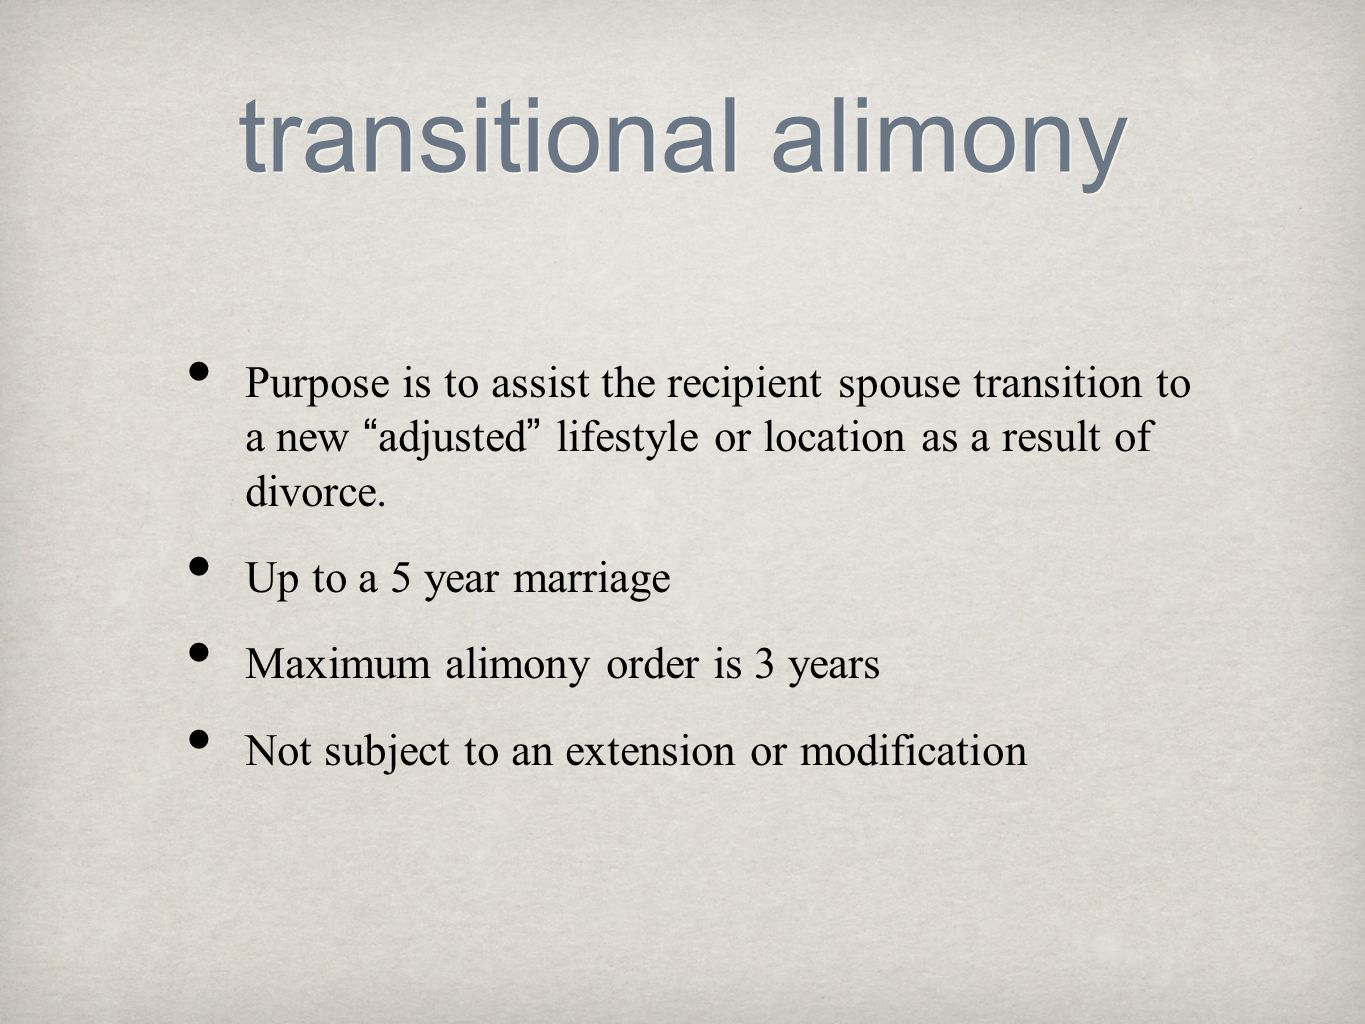 transitional alimony Purpose is to assist the recipient spouse transition to a new adjusted lifestyle or location as a result of divorce.